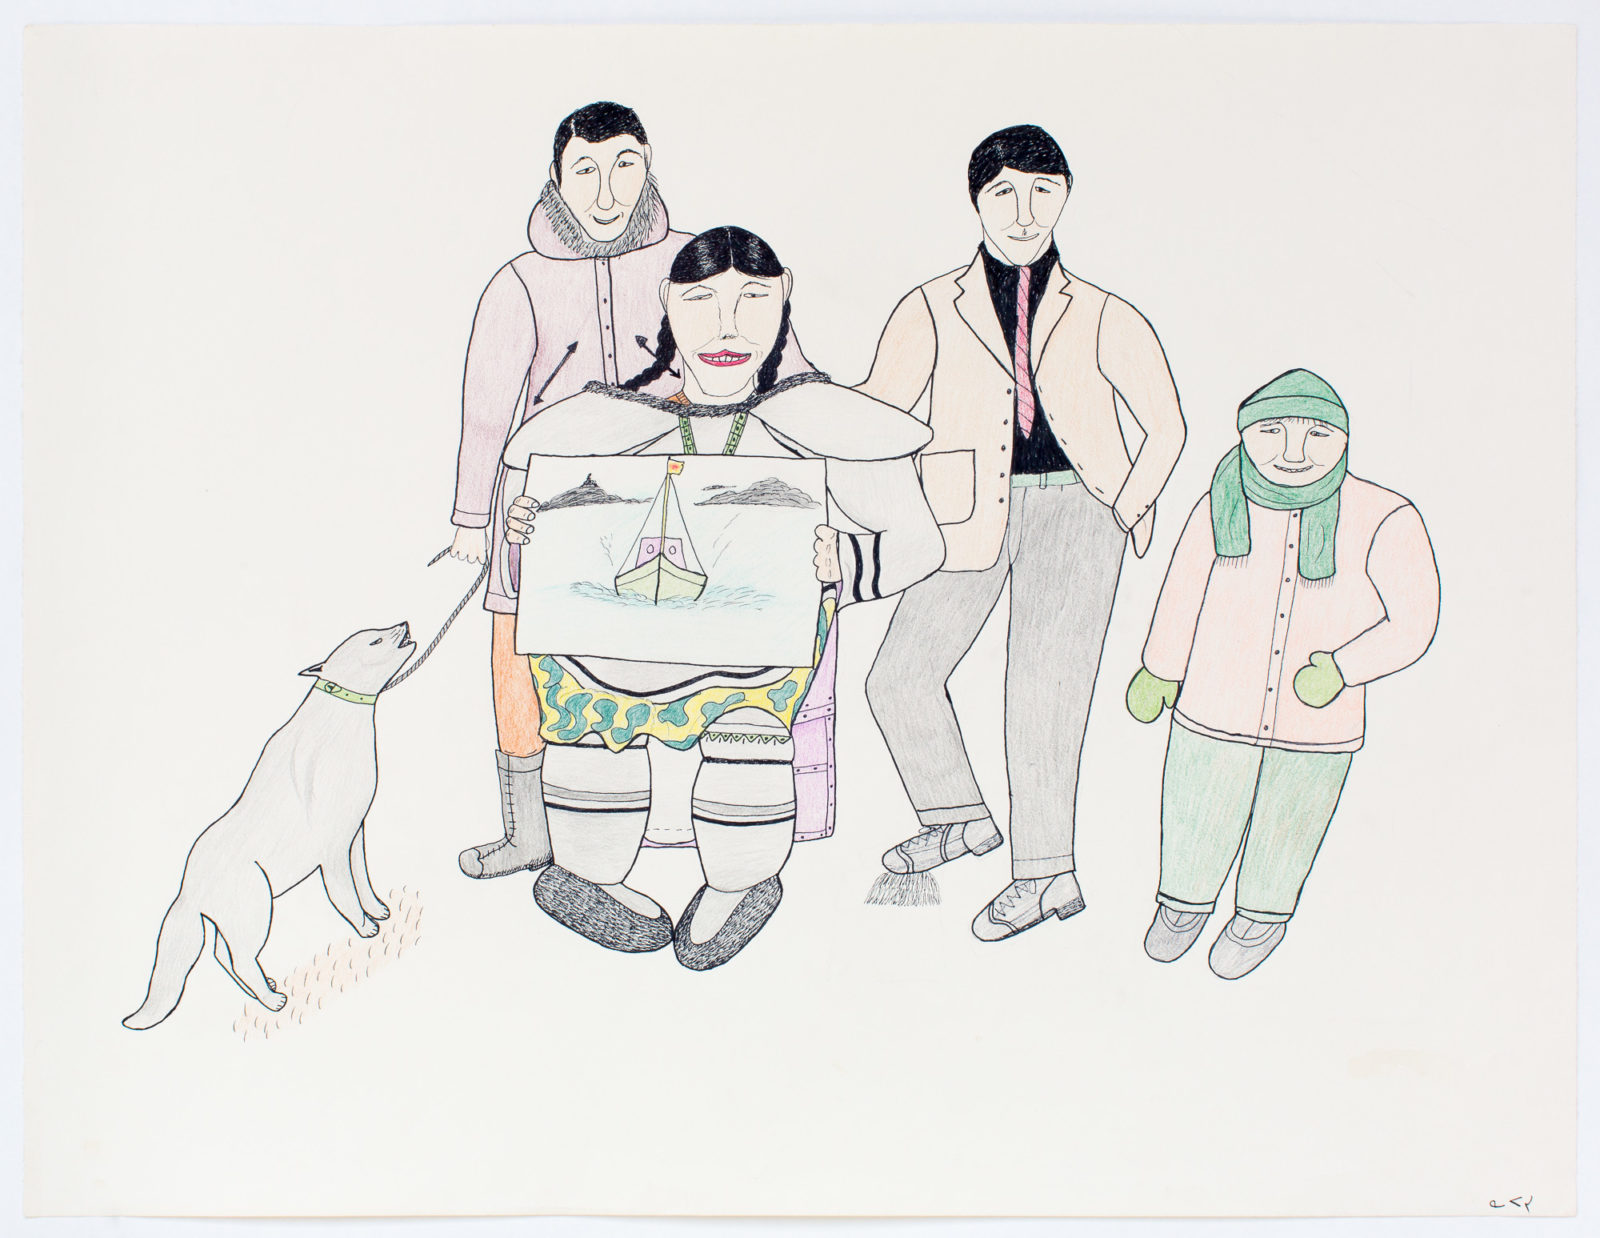 Napatchie Pootoogook - untitled (artist with drawing)